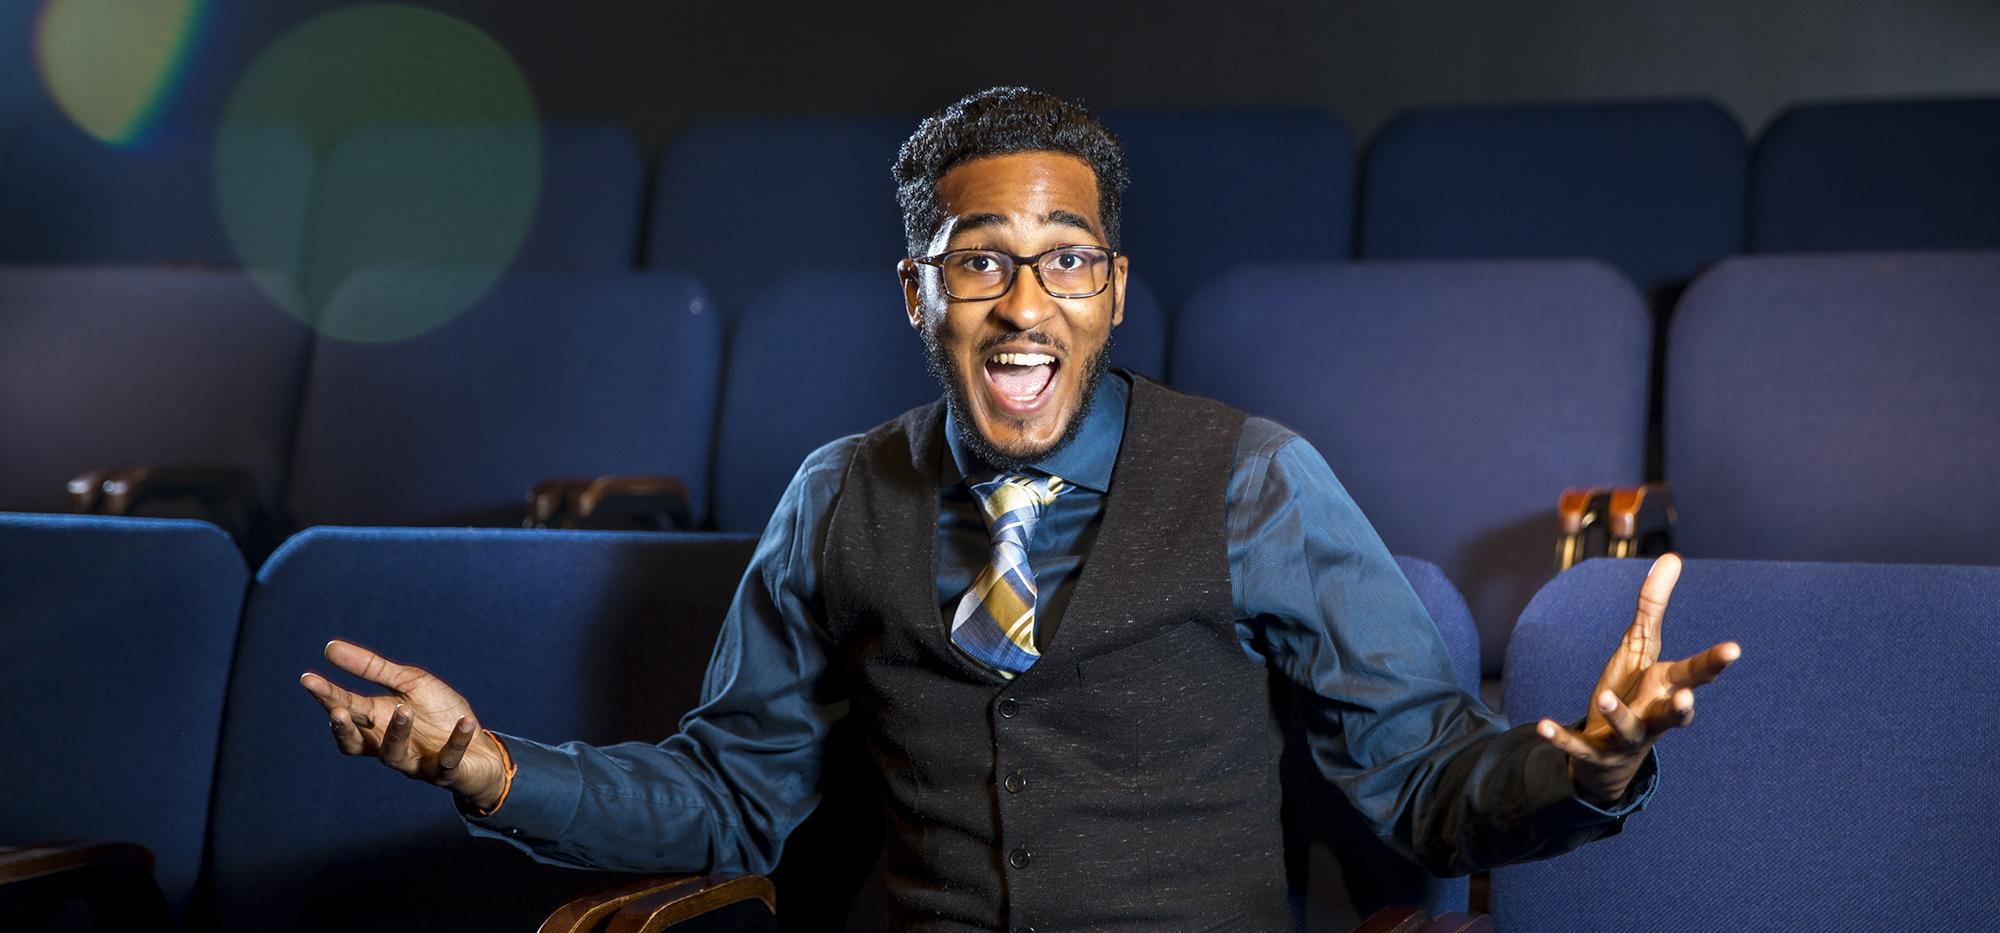 Chris Bulbulia shows his excitement from a seat in an otherwise empty theatre.